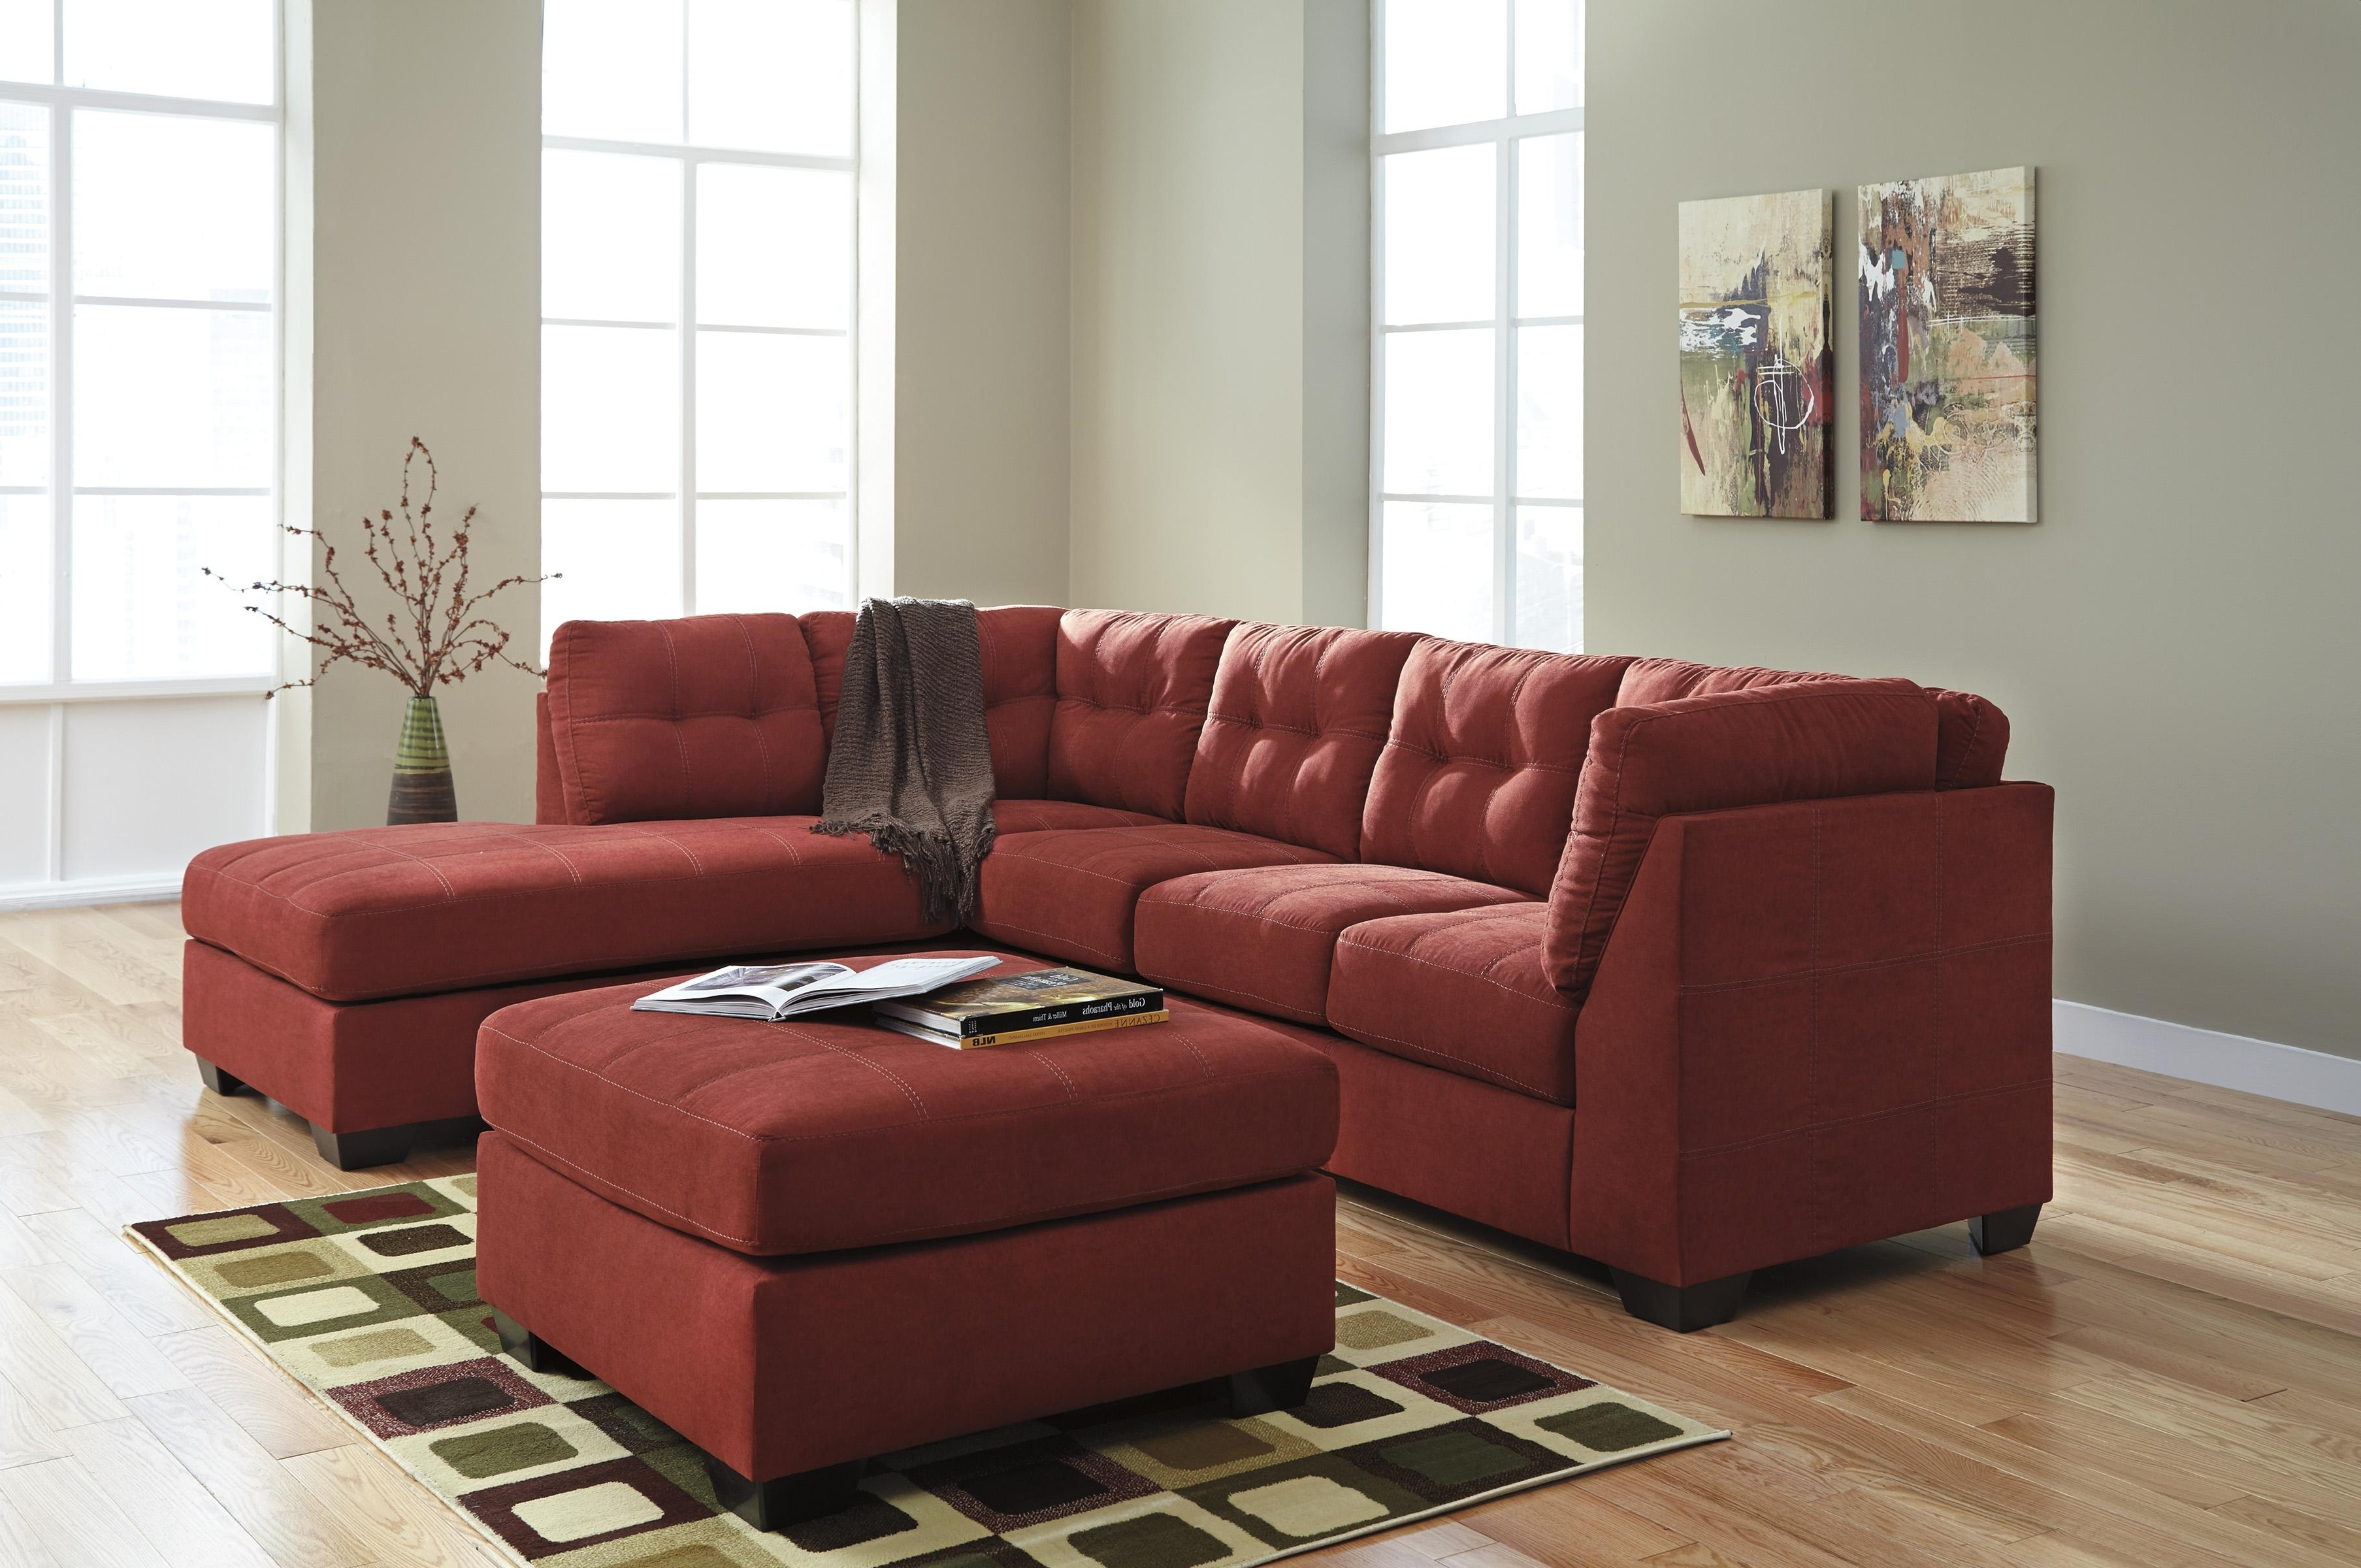 Famous Nz Sectional Sofas Pertaining To Furniture : 5060 Recliner Sectional Sofa Costco $699 Corner Couch (View 9 of 15)